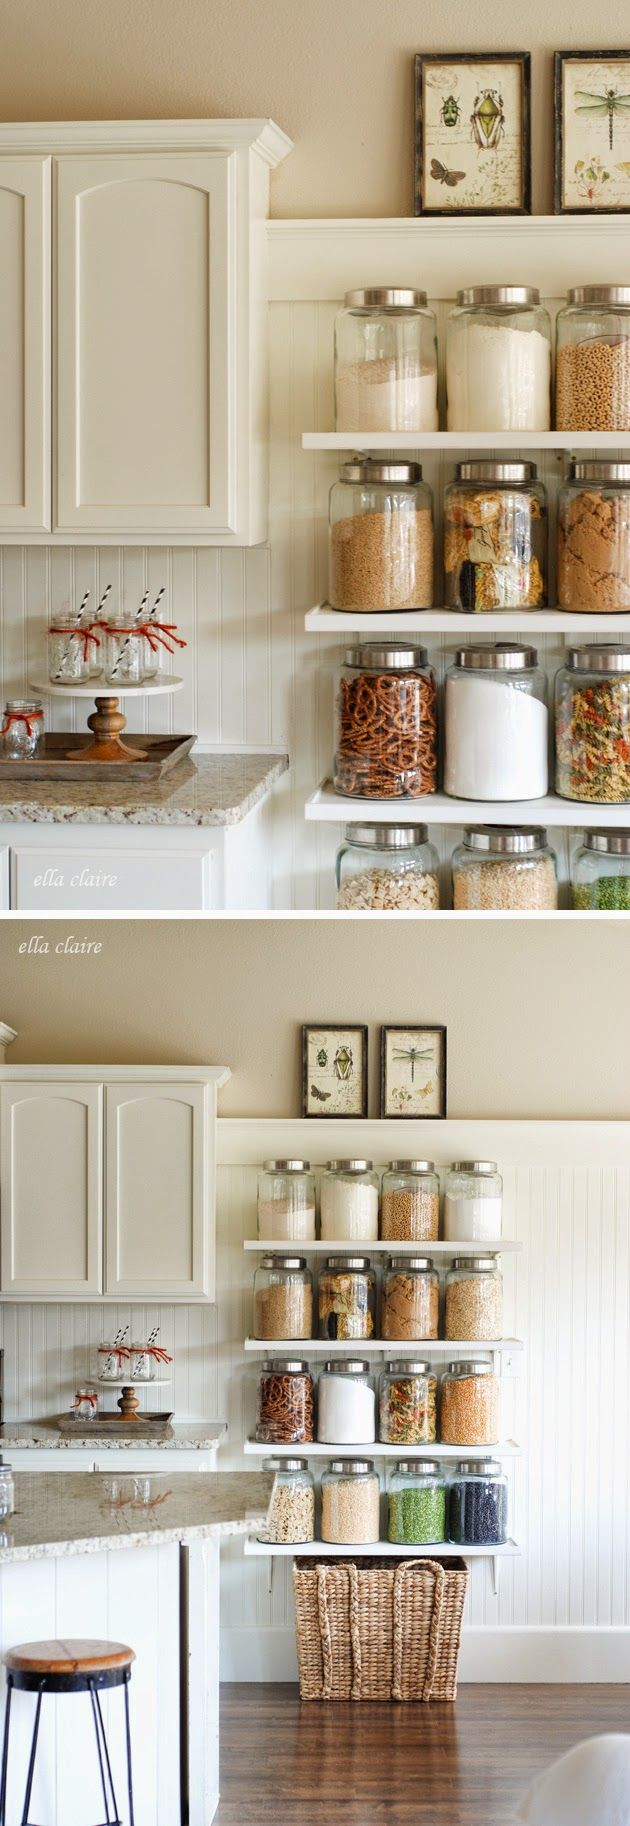 Home Furniture Diy Kitchen Furniture 285 best diy kitchen decor images on pinterest decorating tips country store shelves